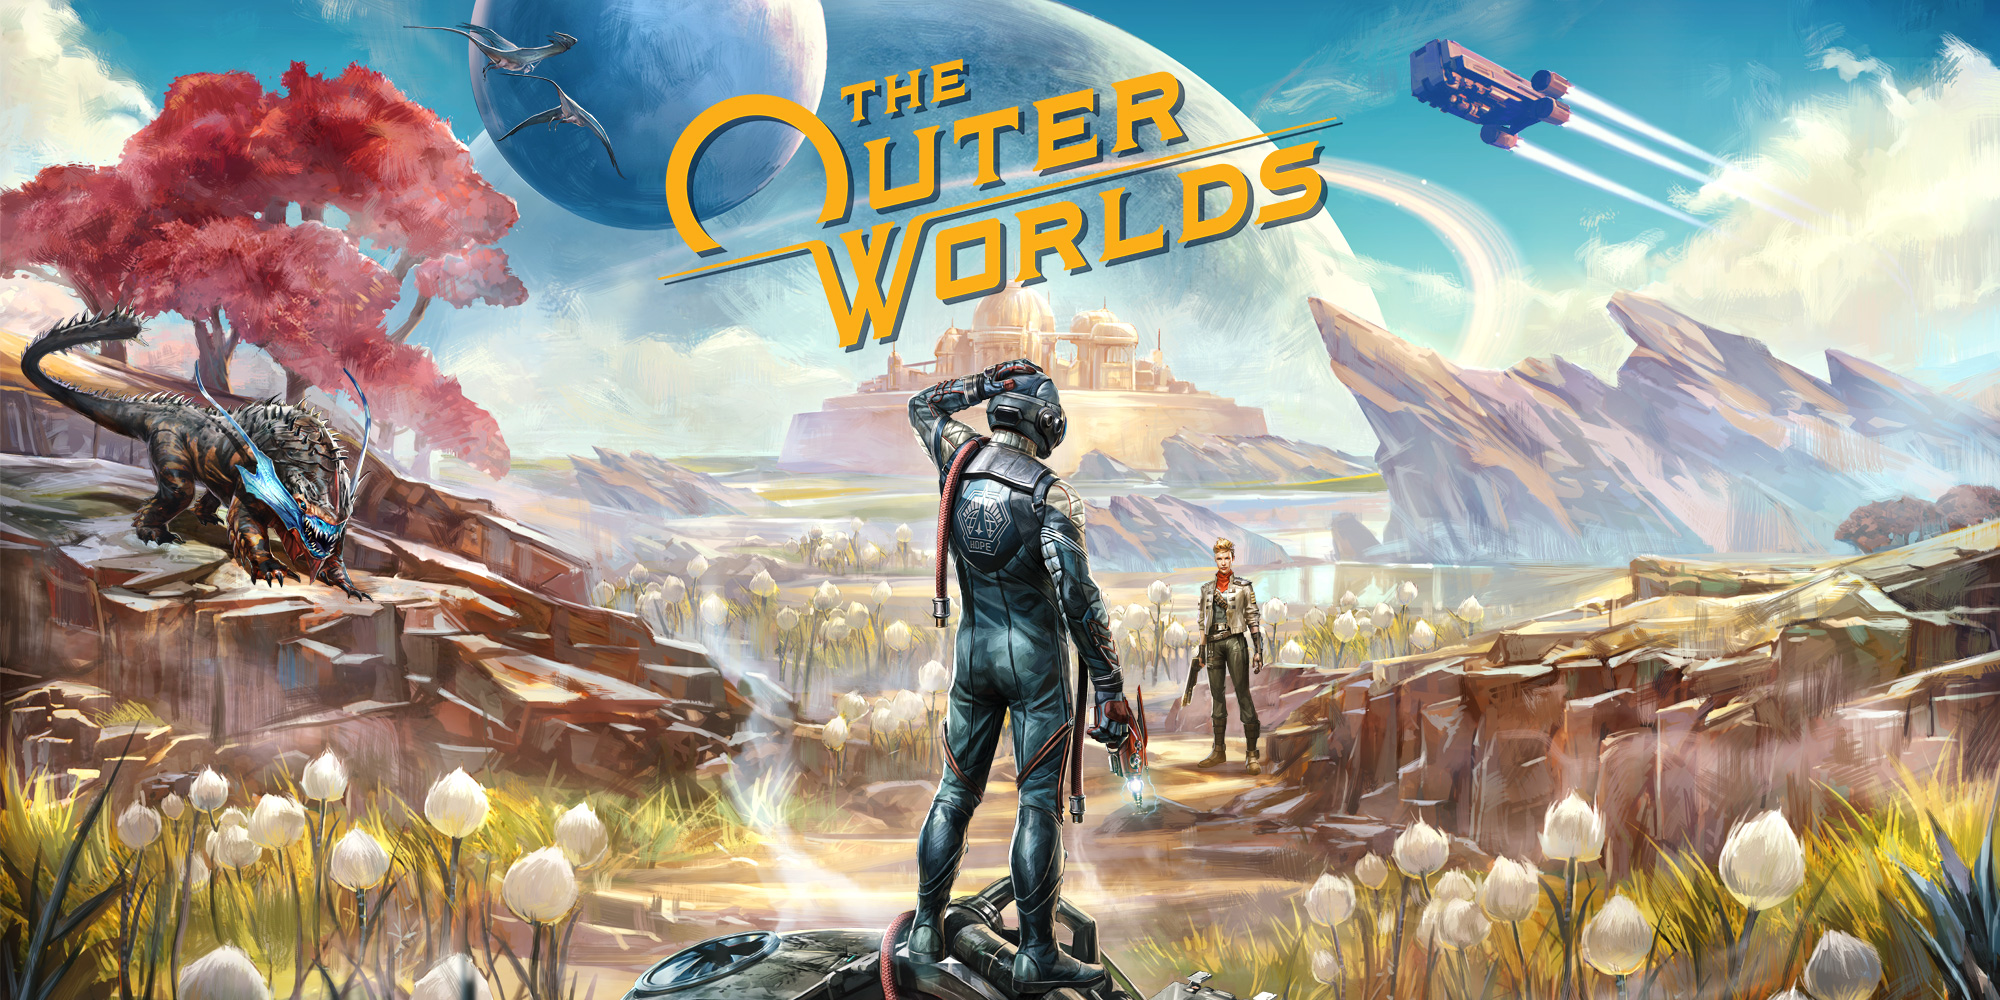 The Outer Worlds (Steam Key RU+CIS) + Gift